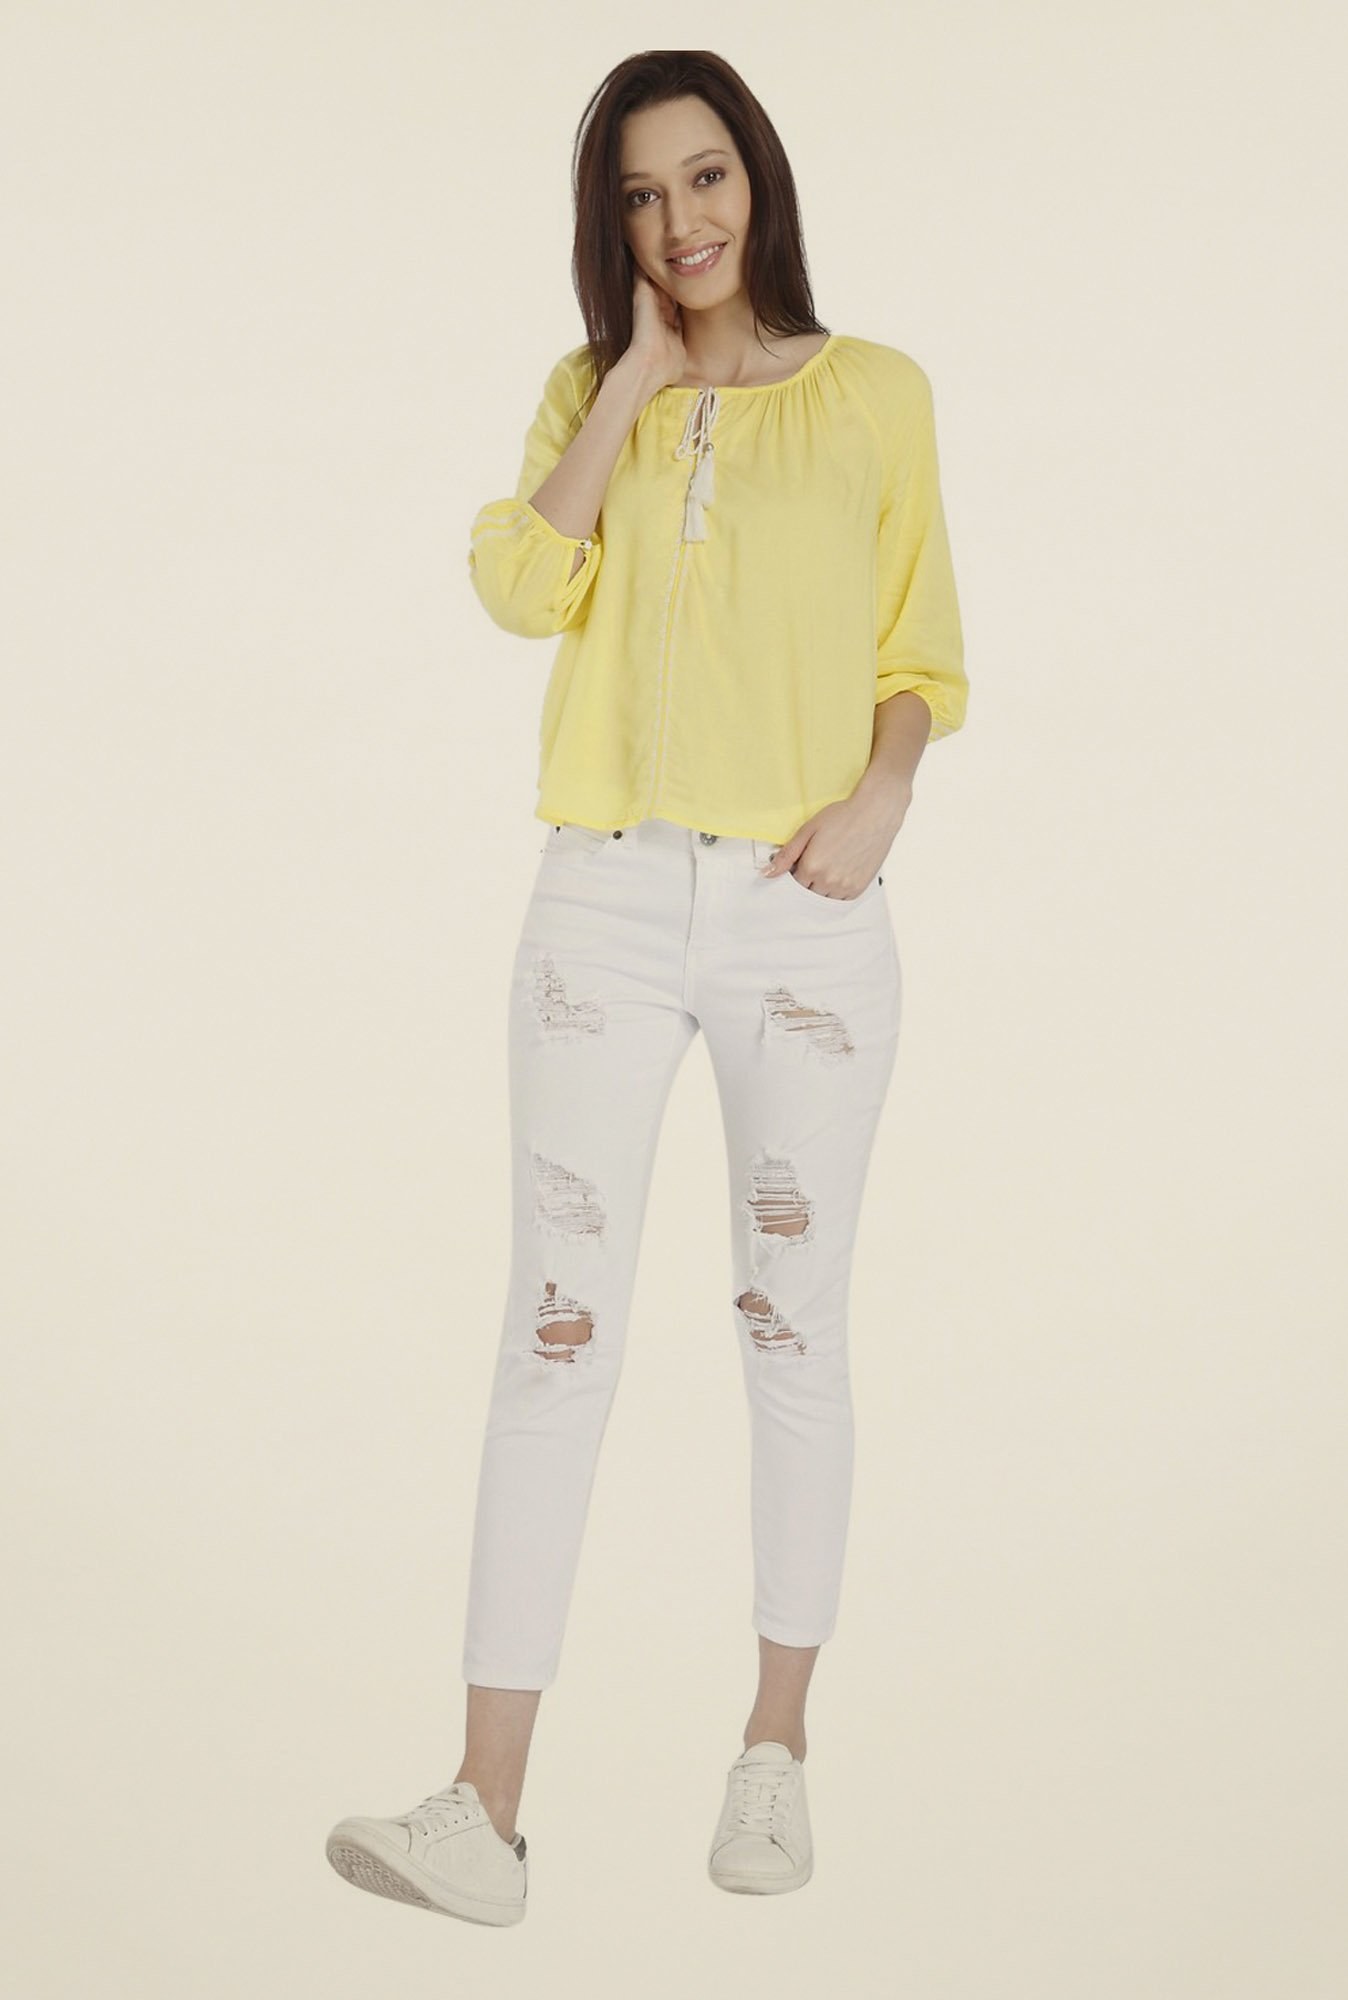 Vero Moda Yellow Solid Top